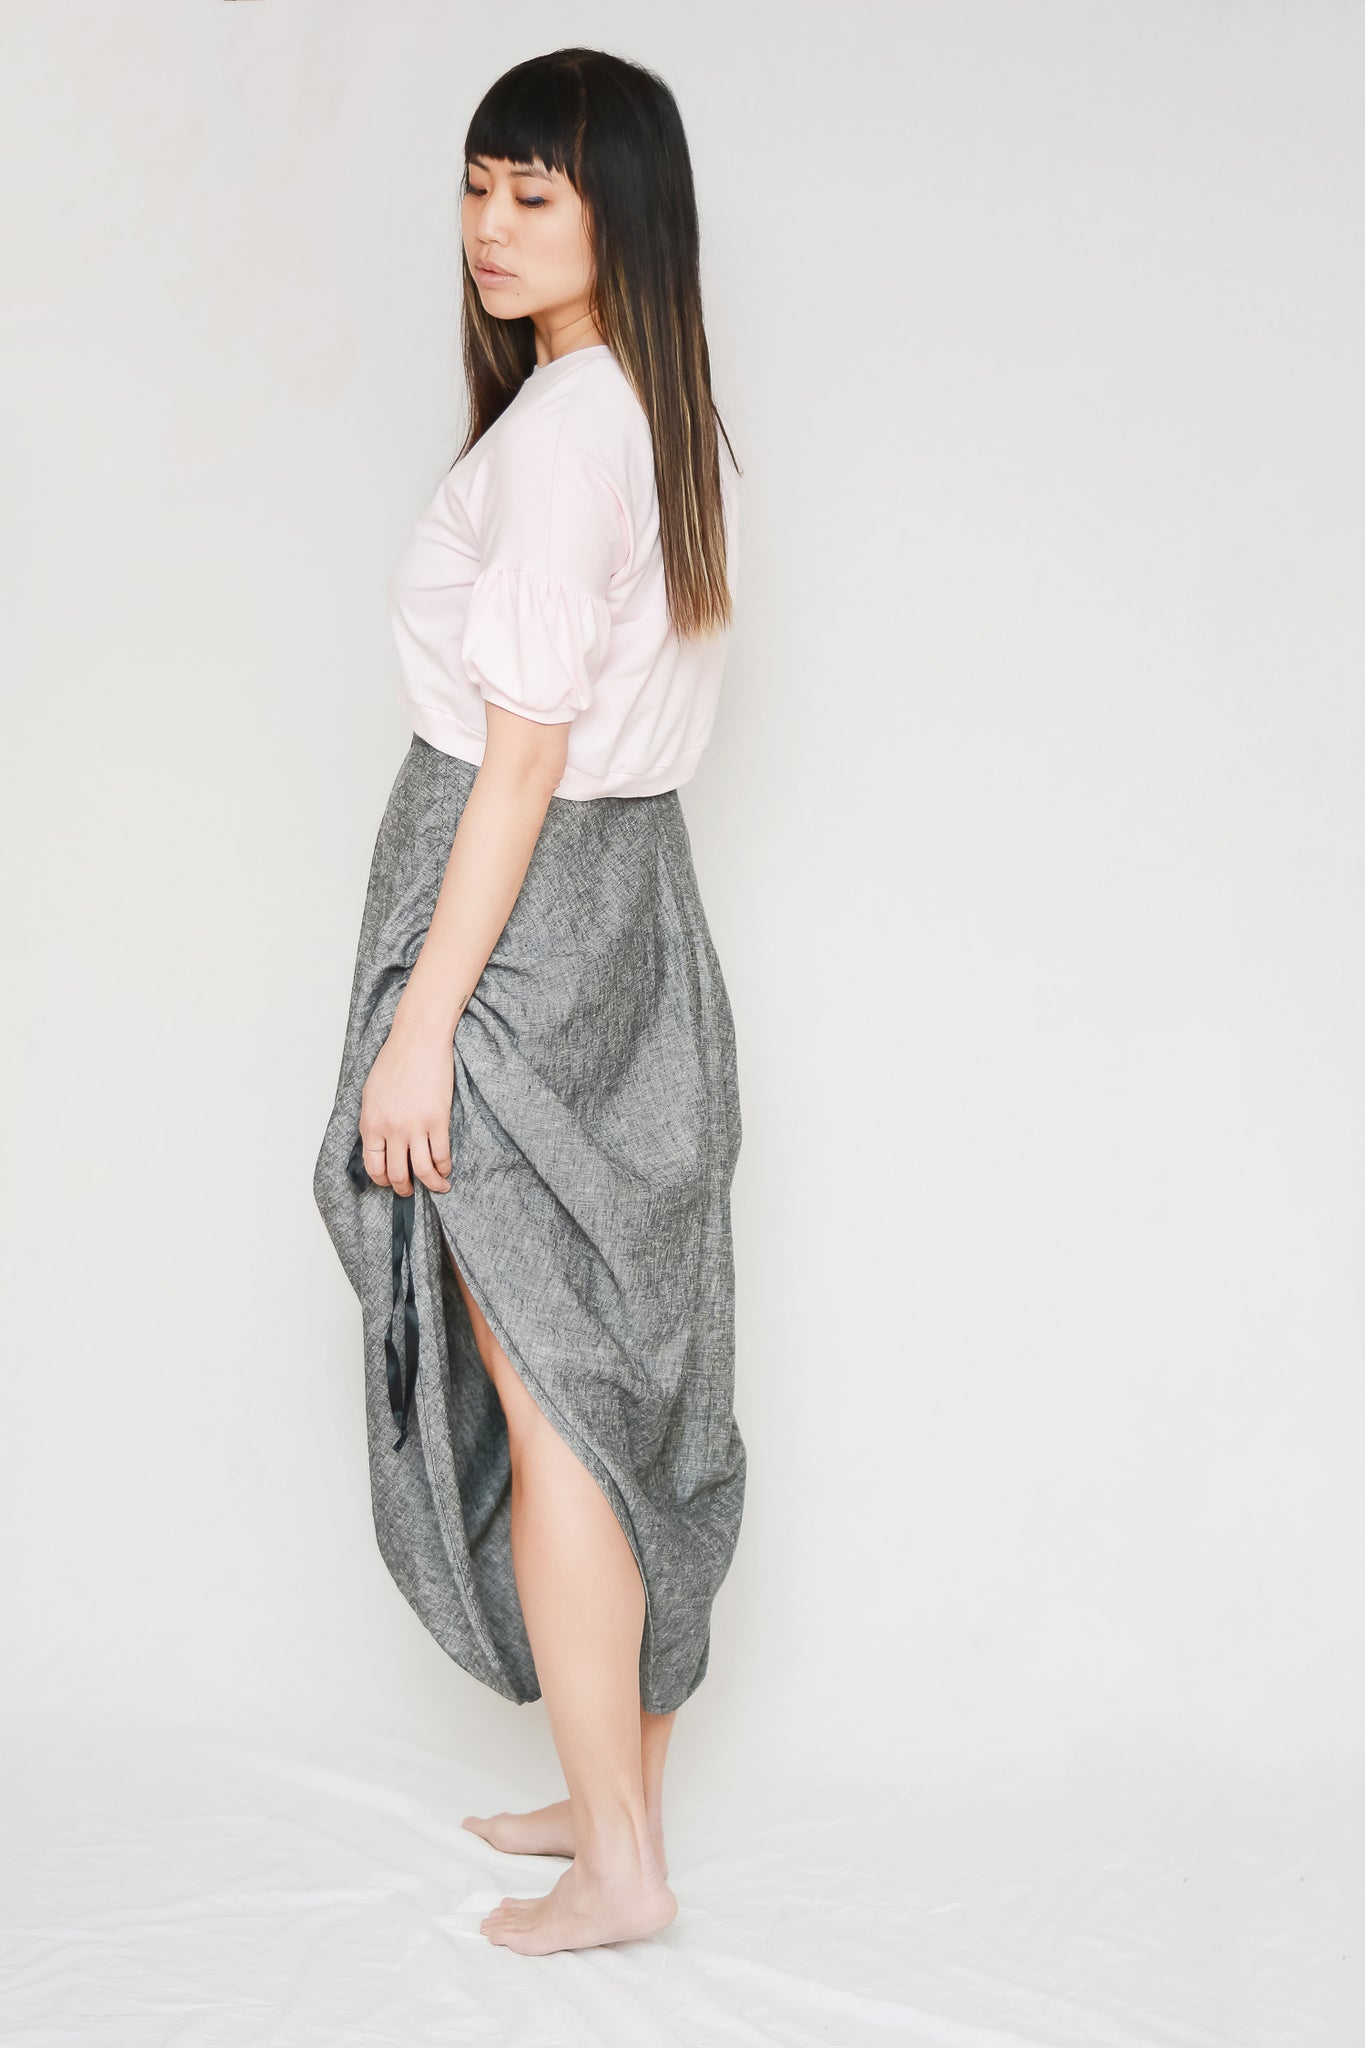 independent designer sewing patterns for women, modern design skirt sewing pattern with unique side seam detail. PDF instant download and print shop size files available.